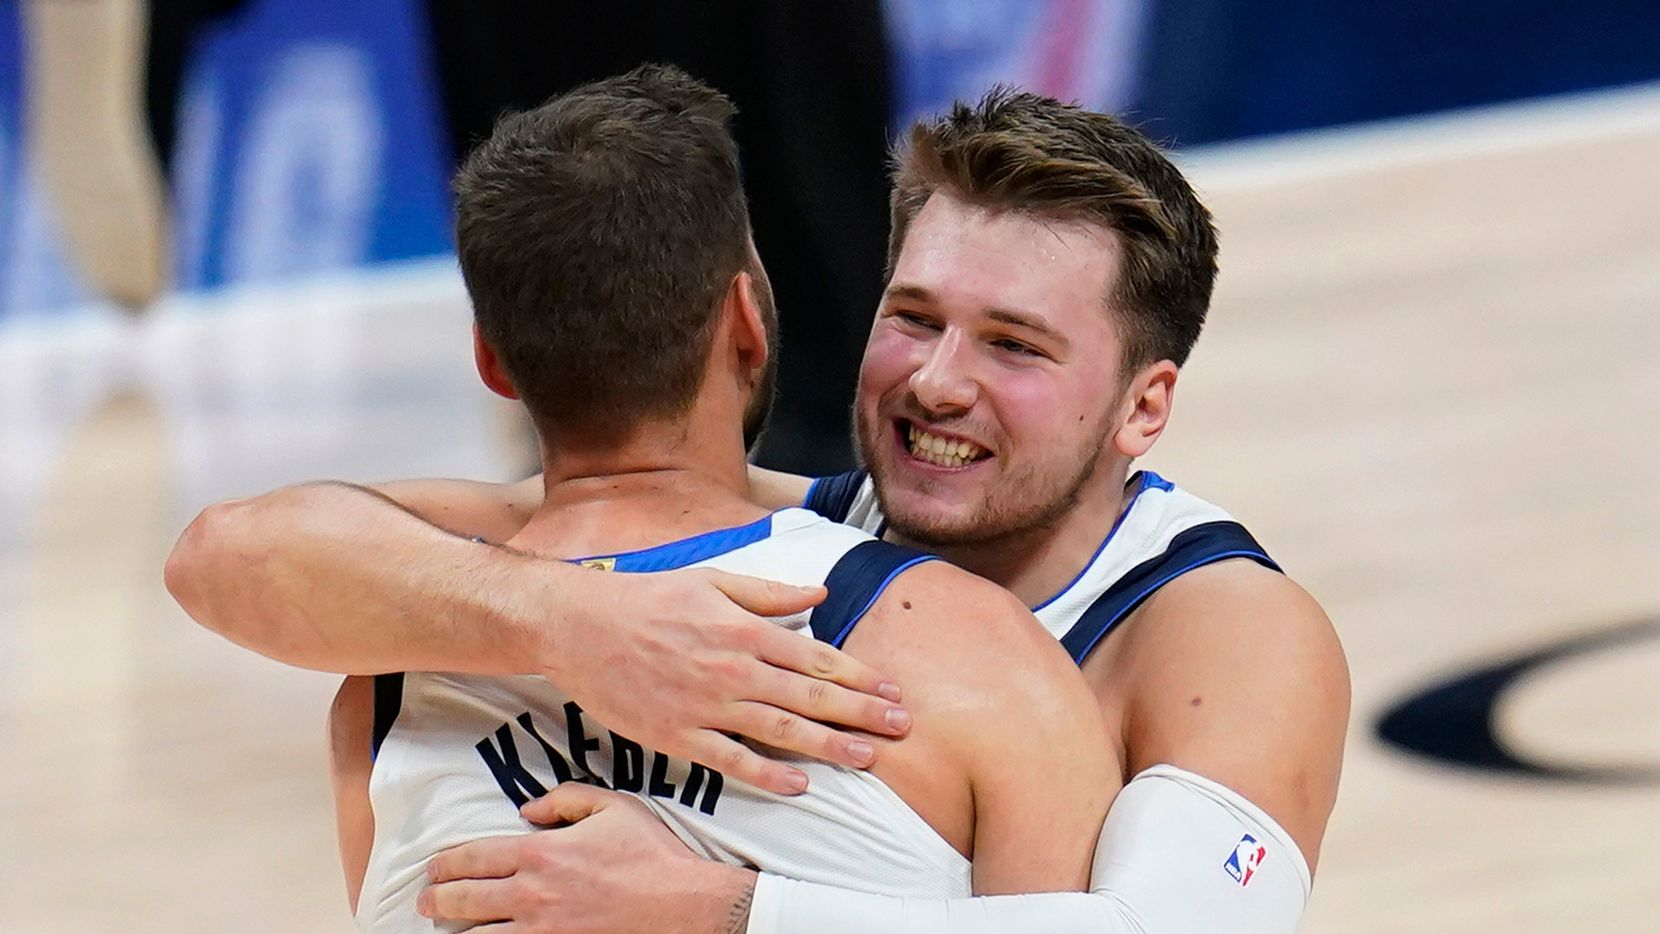 Mavericks guard Luka Doncic (77) hugs forward Maxi Kleber (42) after Kleber hit a basket late in the fourth quarter of a game against the Nuggets on Thursday, Jan. 7, 2021, in Denver. (AP Photo)